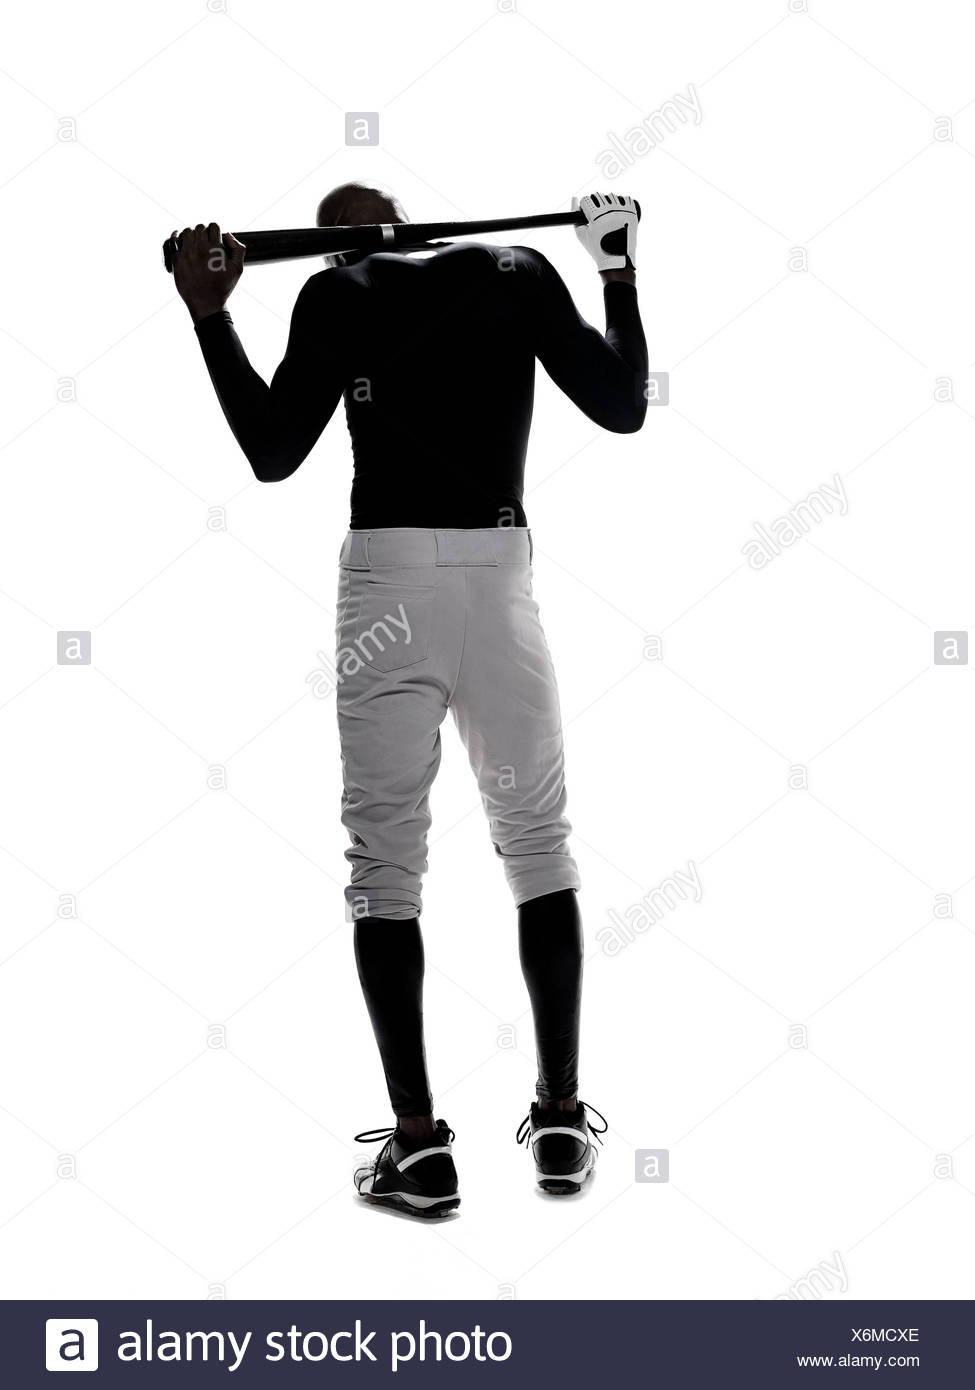 Disappointed baseball player - Stock Image